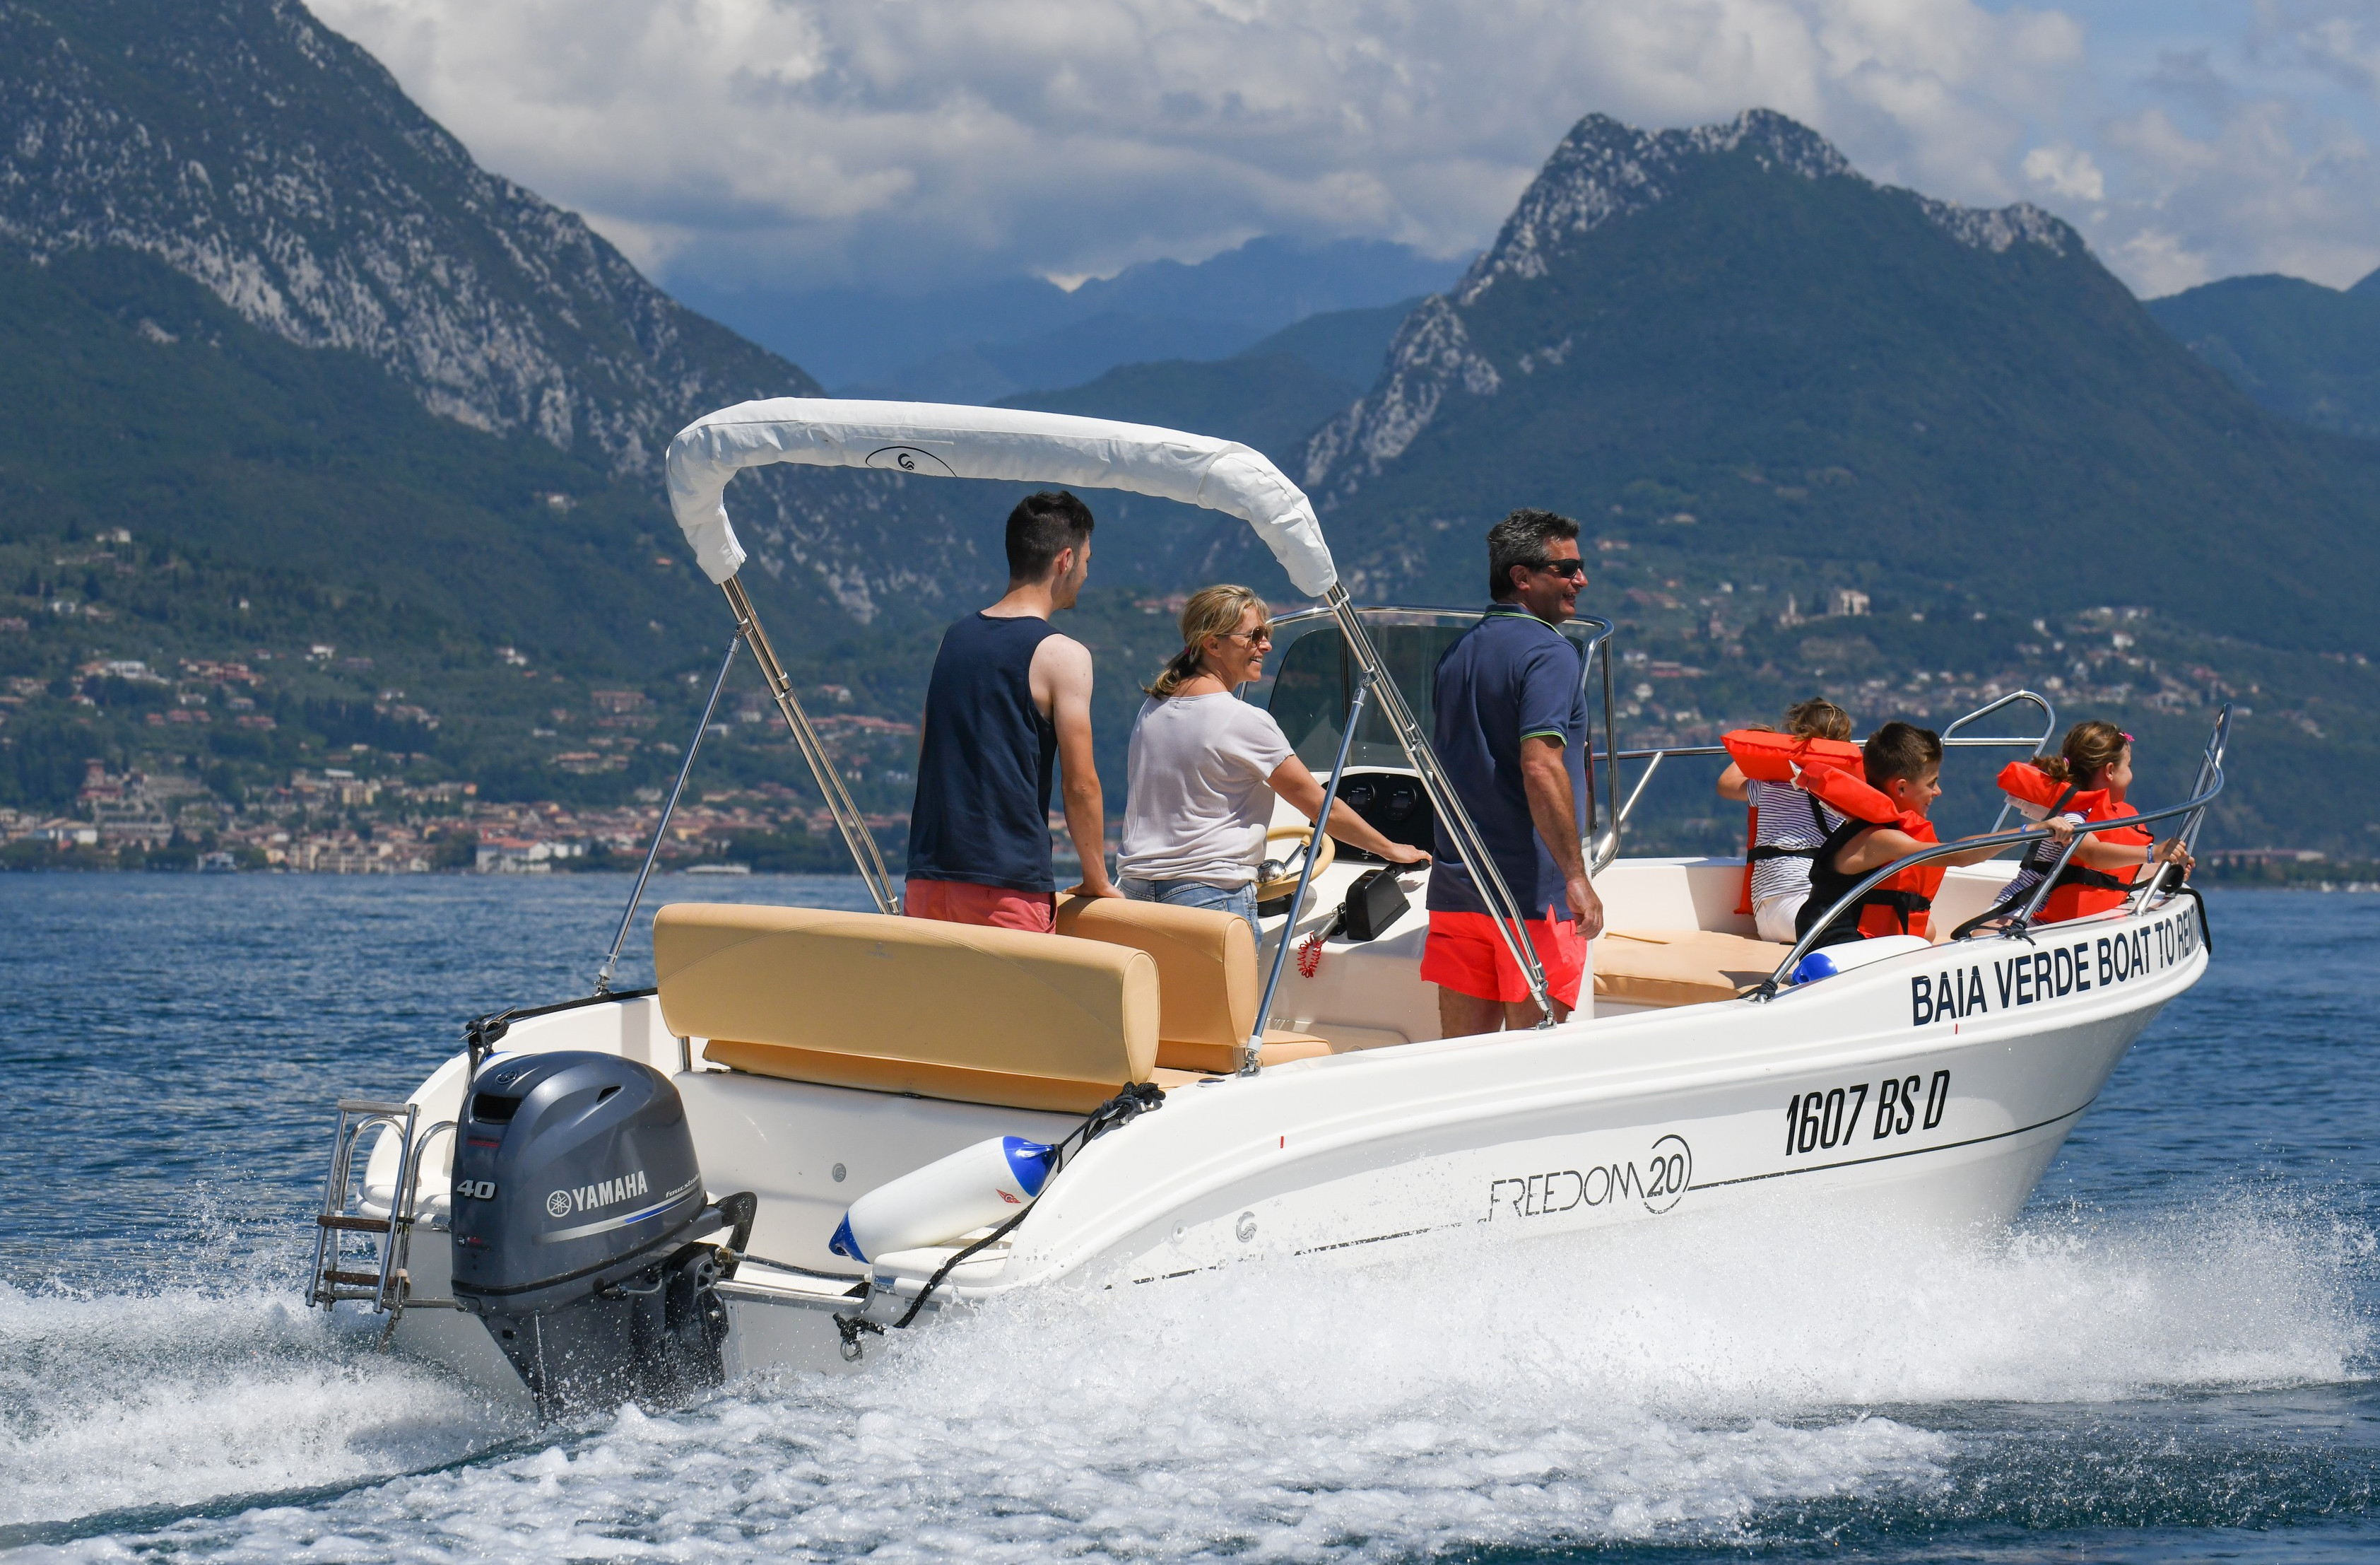 Boat to Rent - Baia Verde